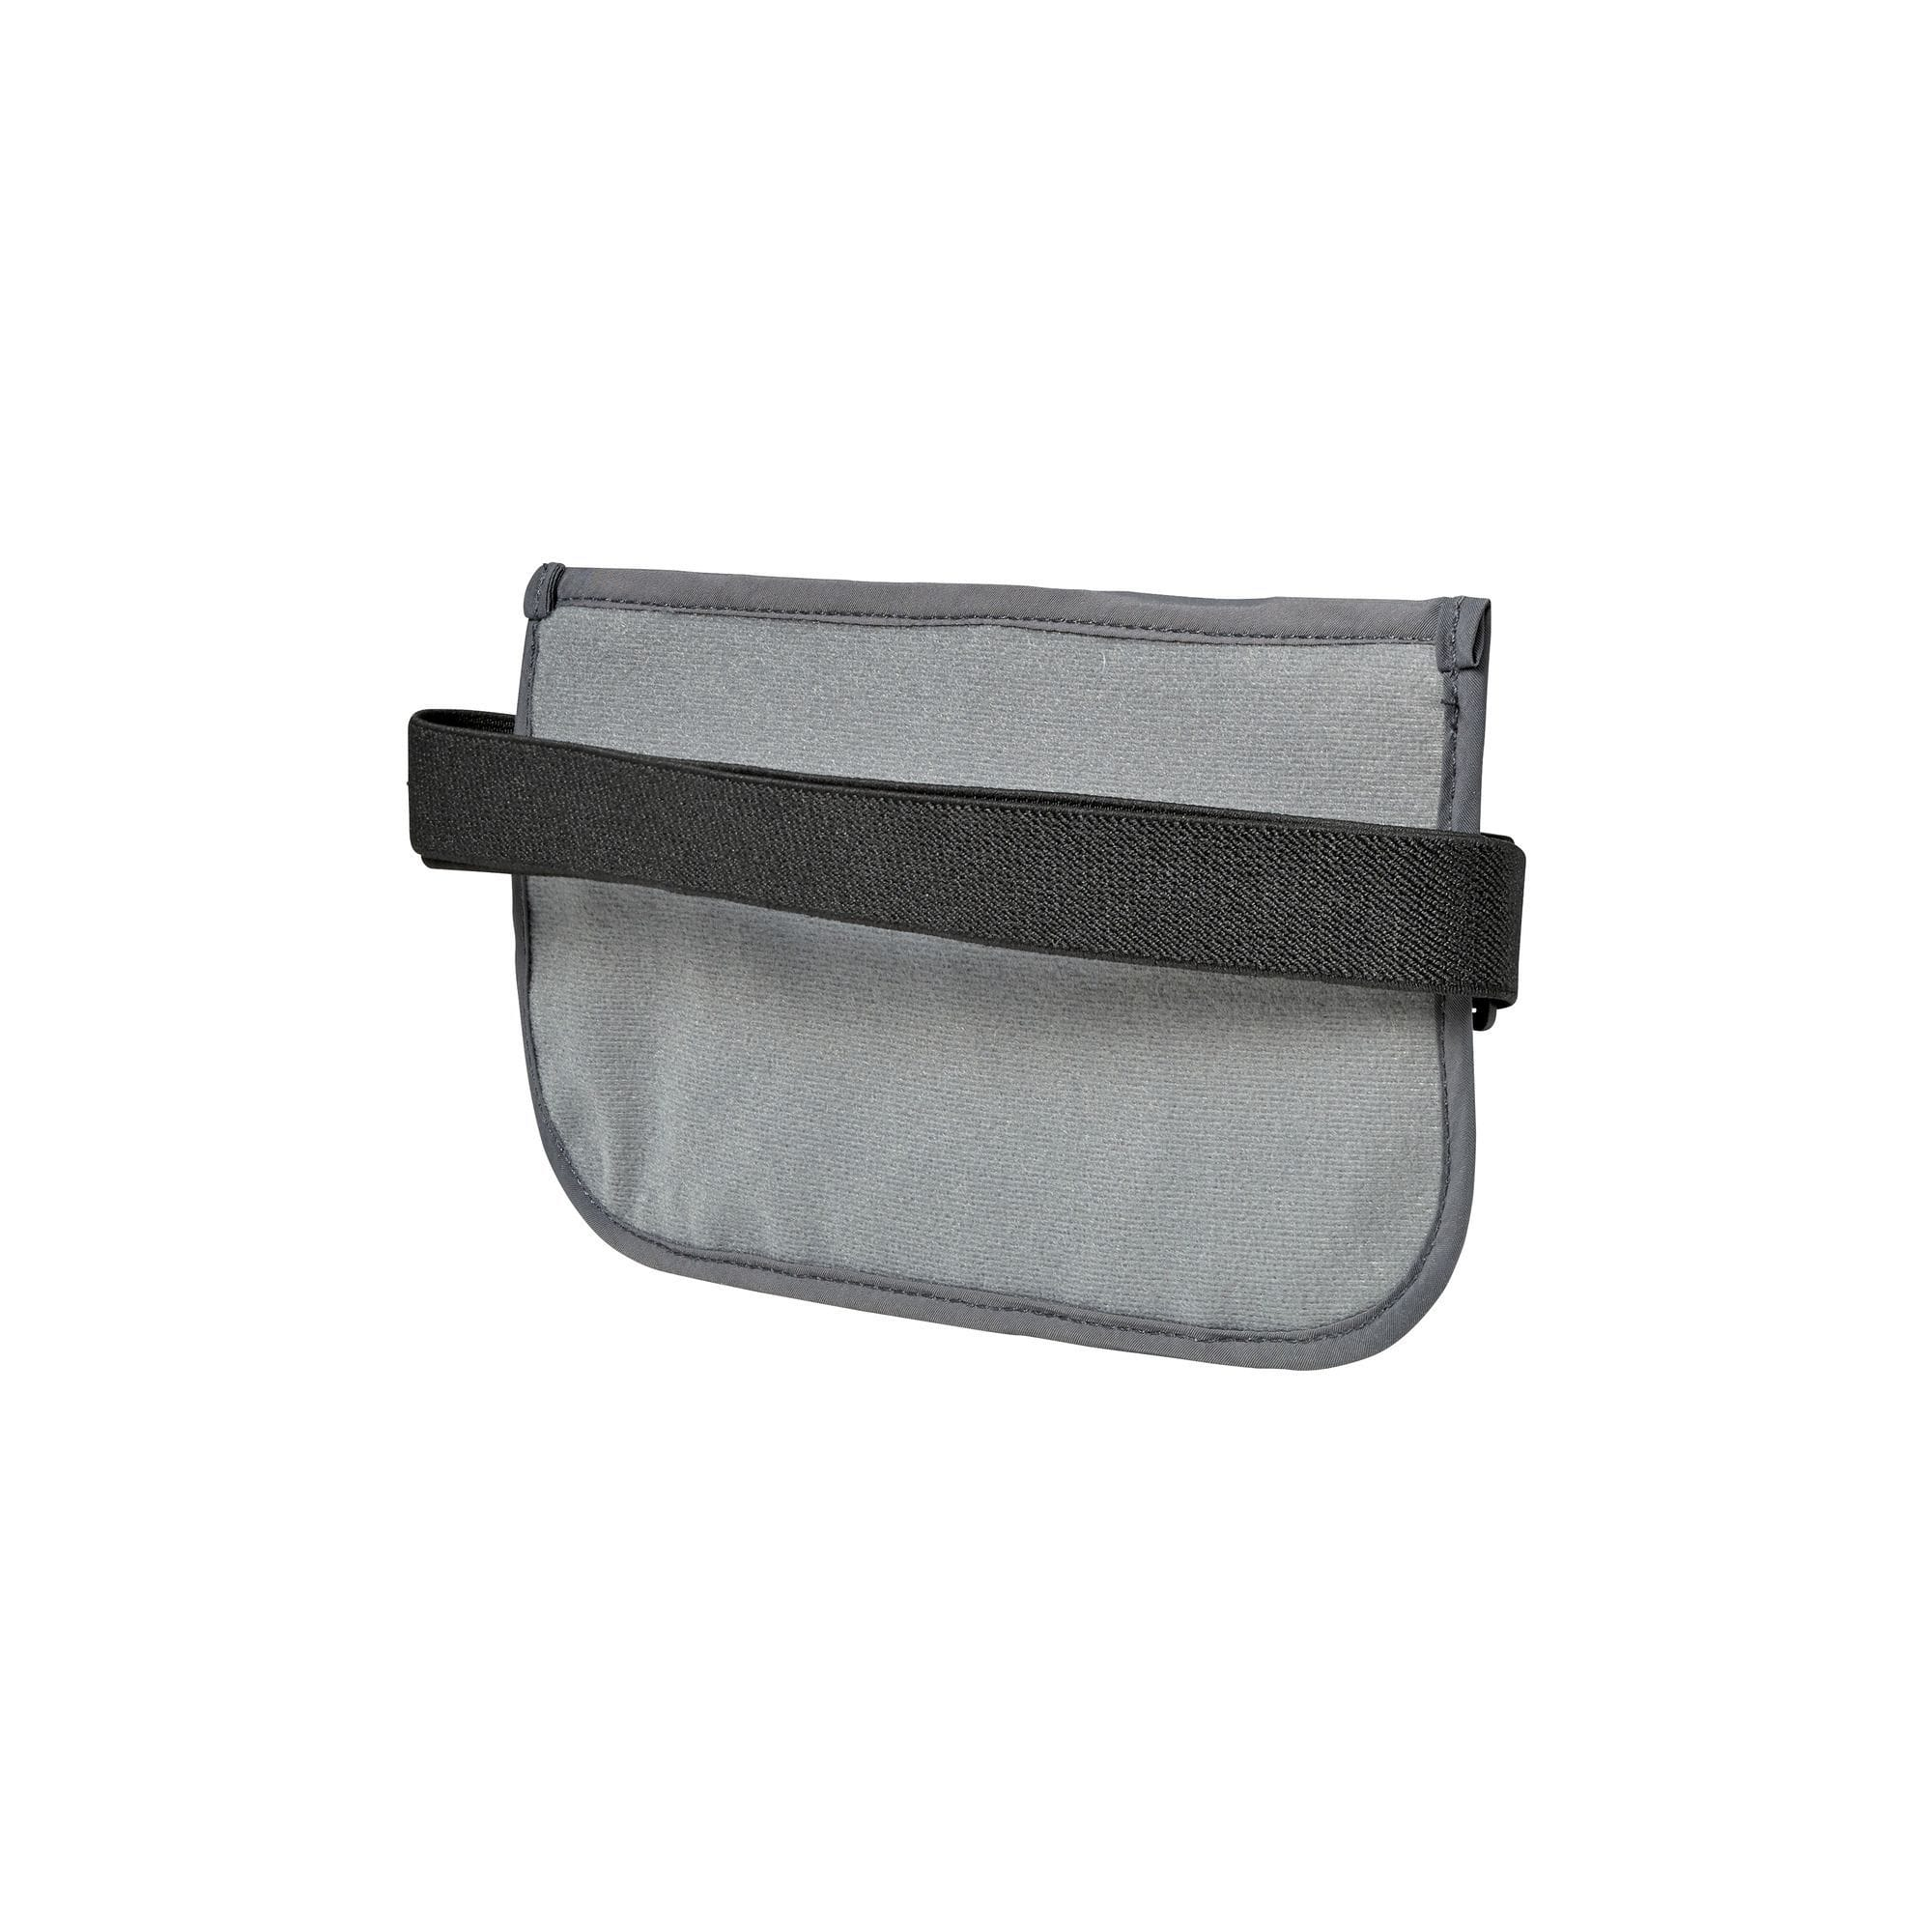 SECURITY WAISTE BELT RFID